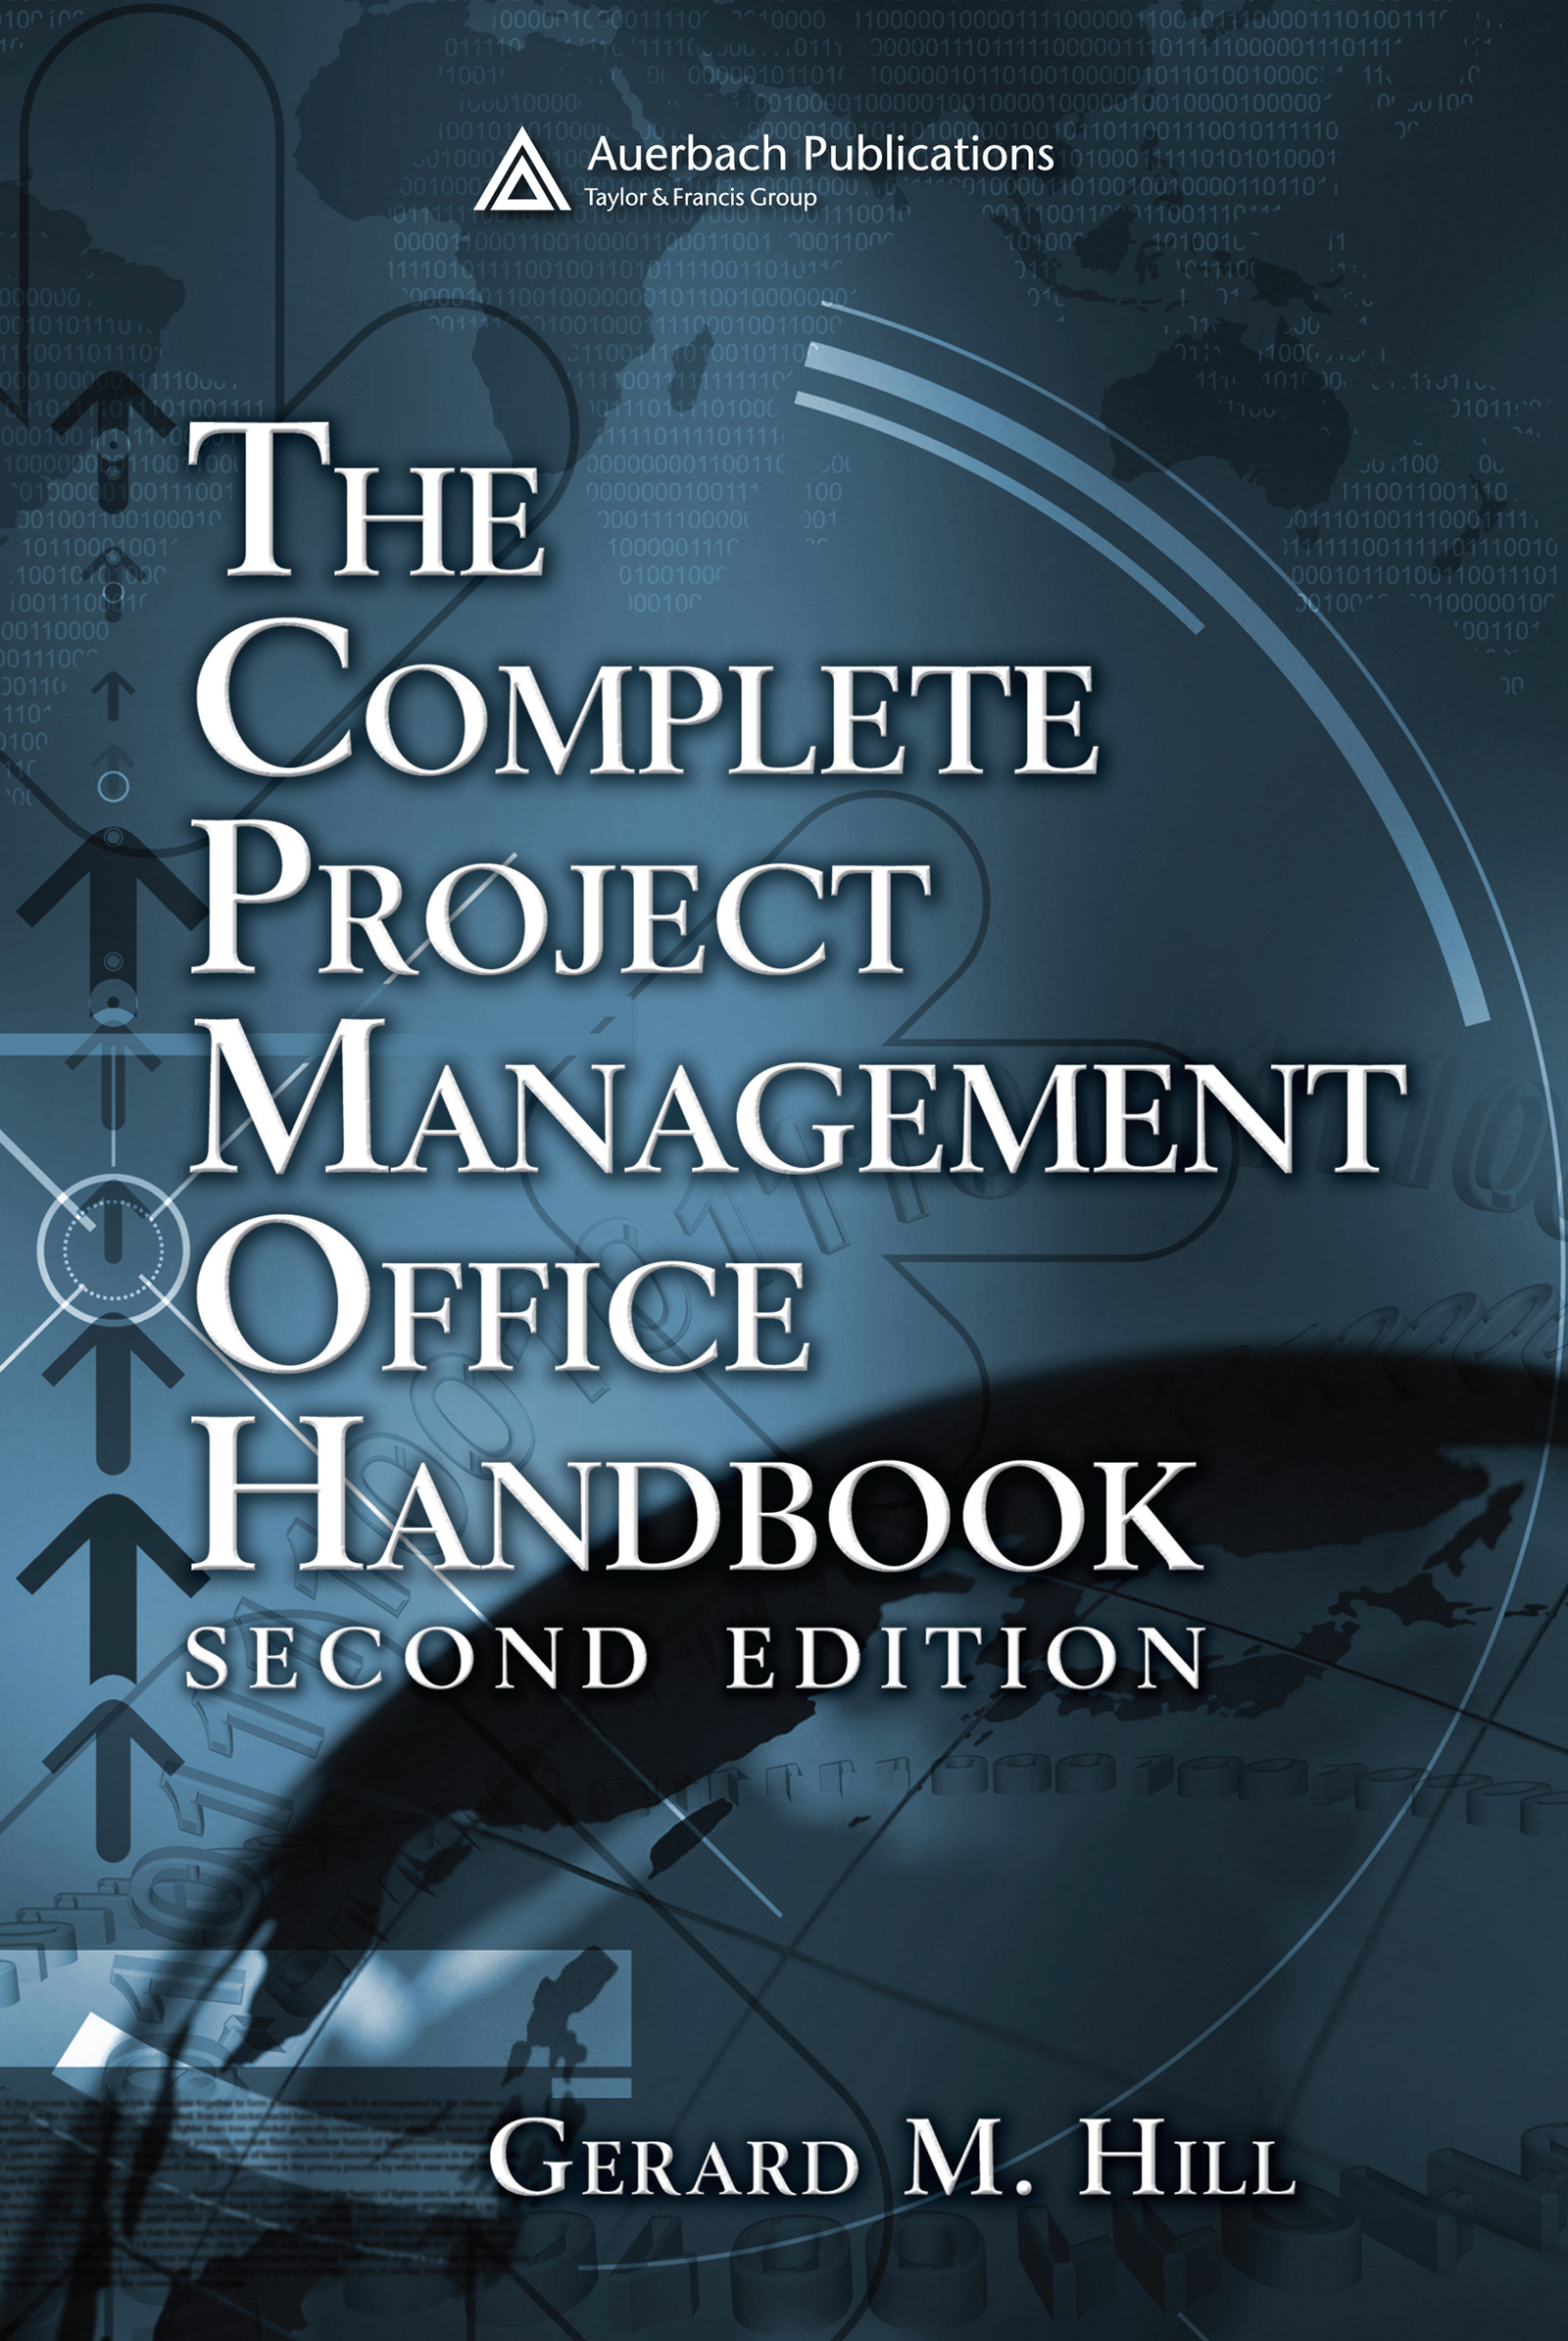 Download Ebook The Complete Project Management Office Handbook (2nd ed.) by Gerard M. Hill Pdf